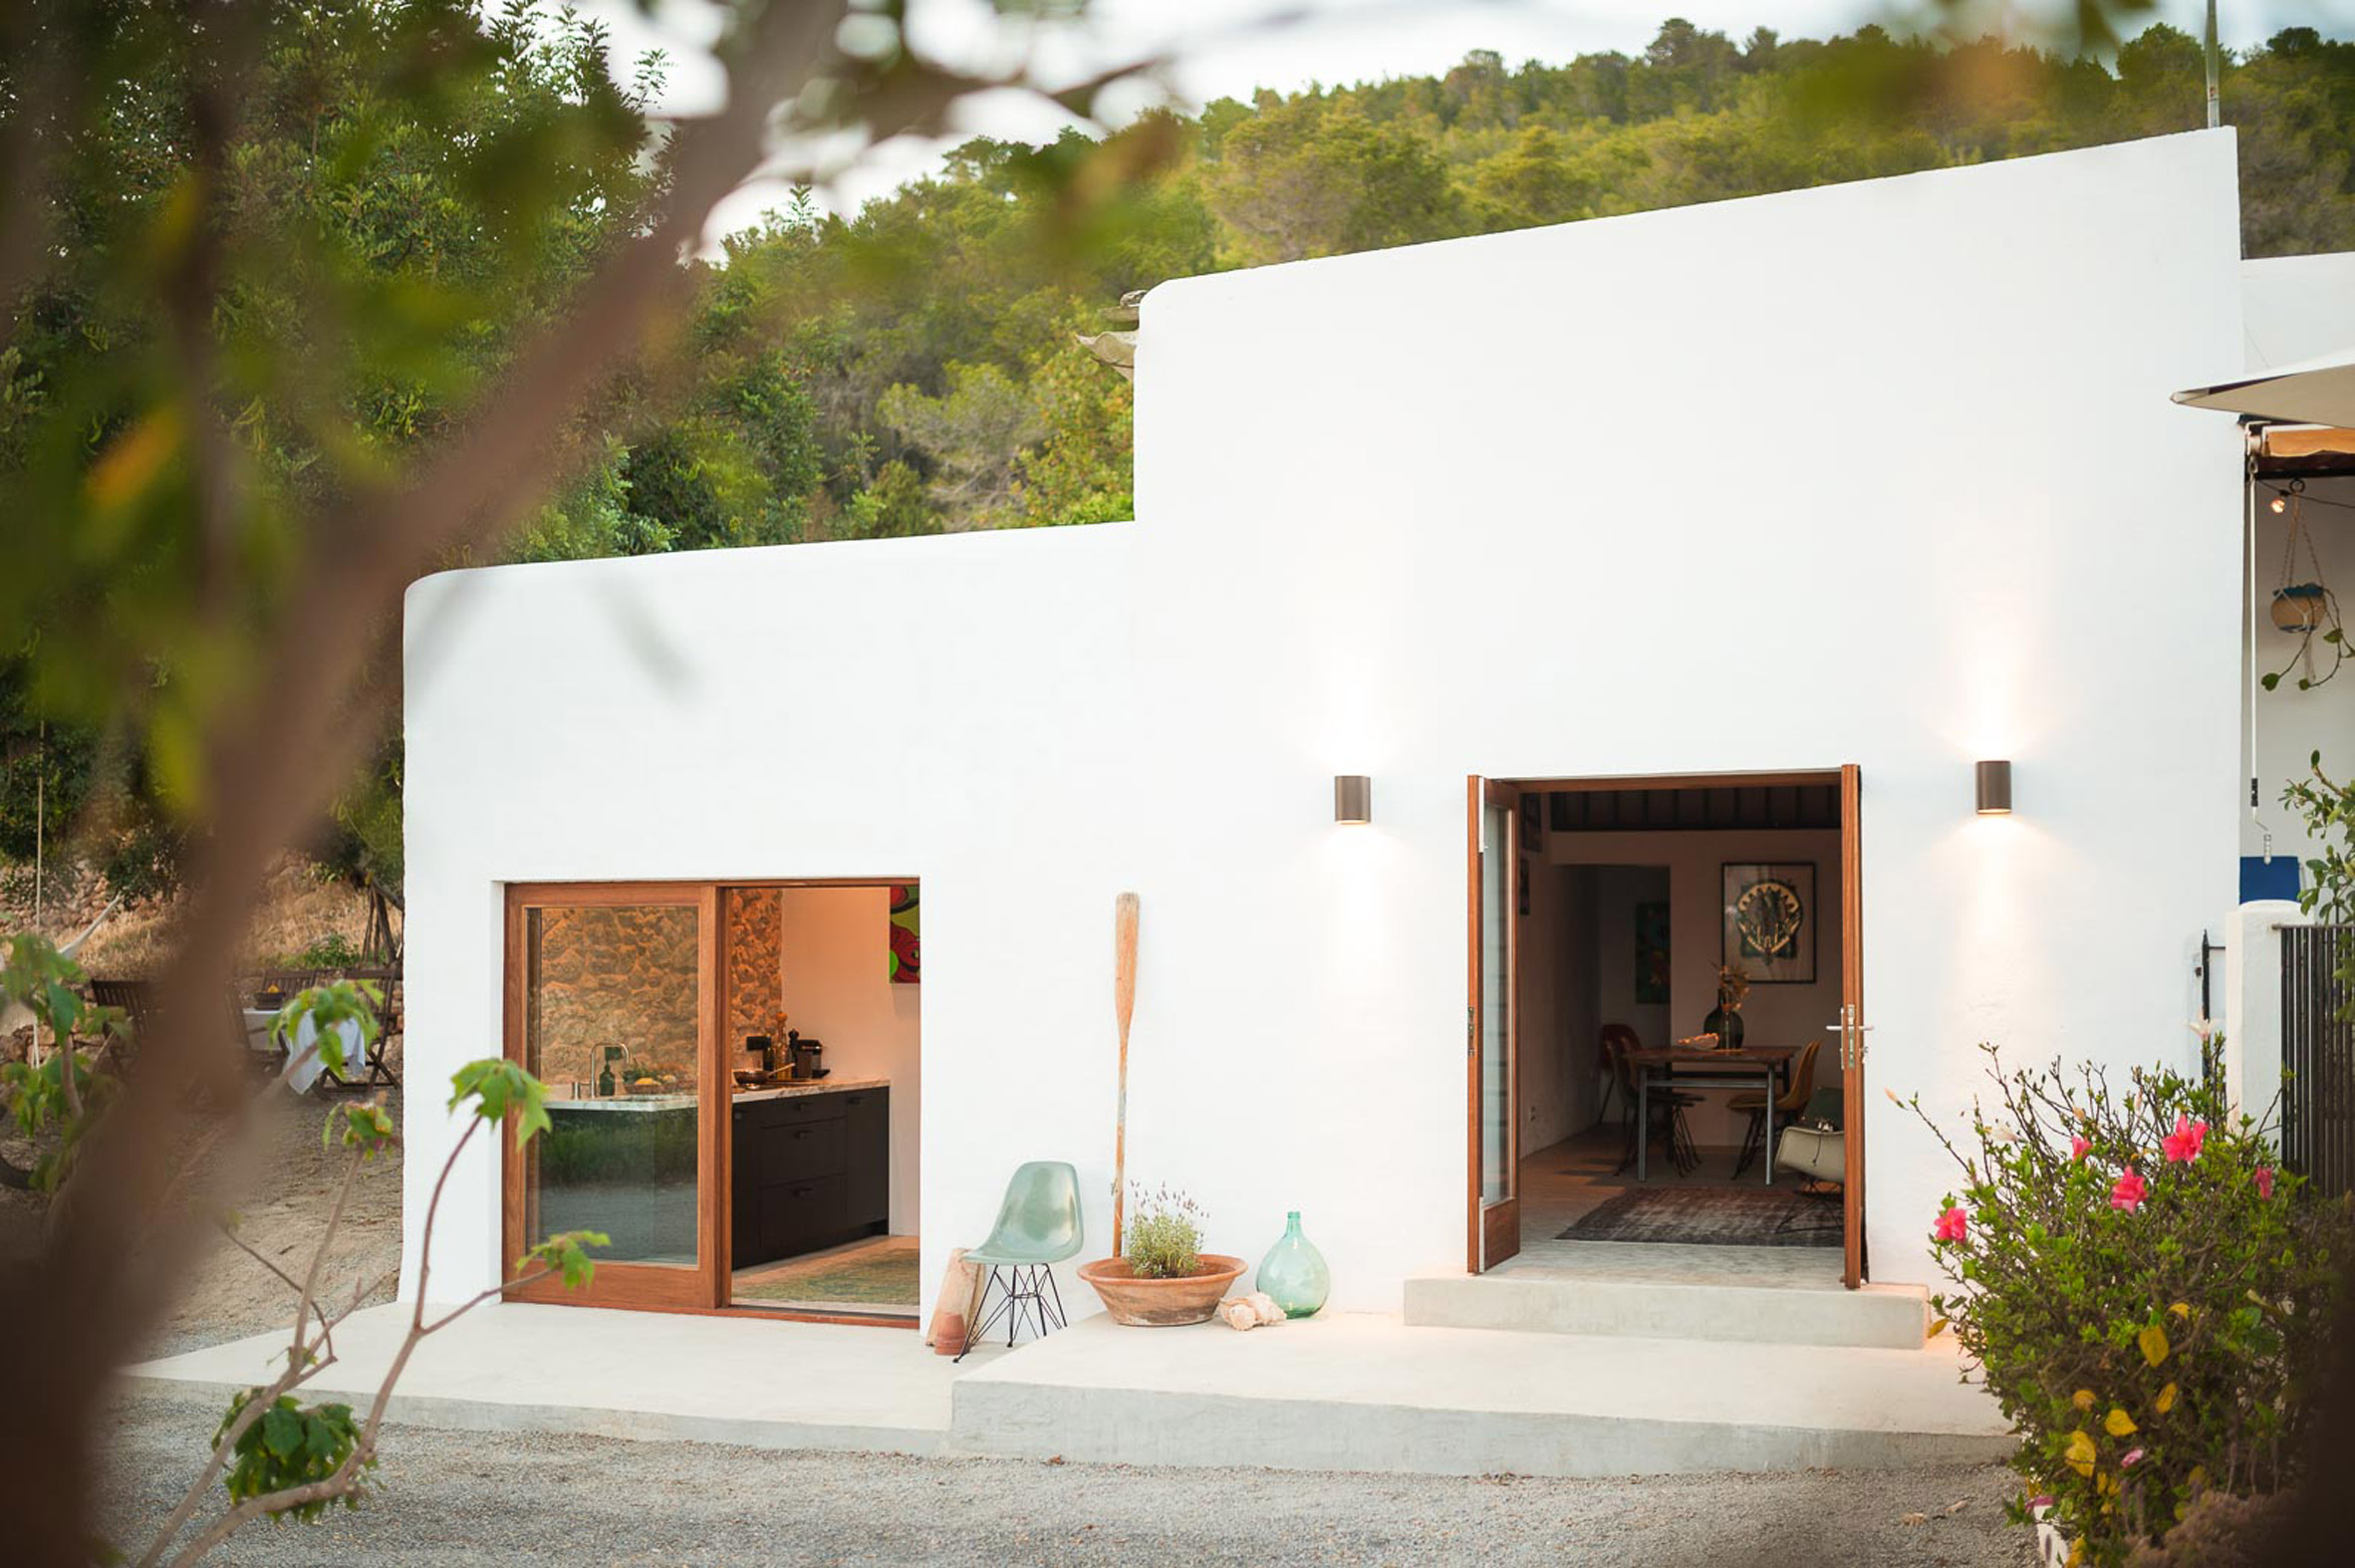 5. Transformation from stable to guesthouse in Ibiza by Standard Studio - Transformation from stable to guesthouse in Ibiza by Standard Studio